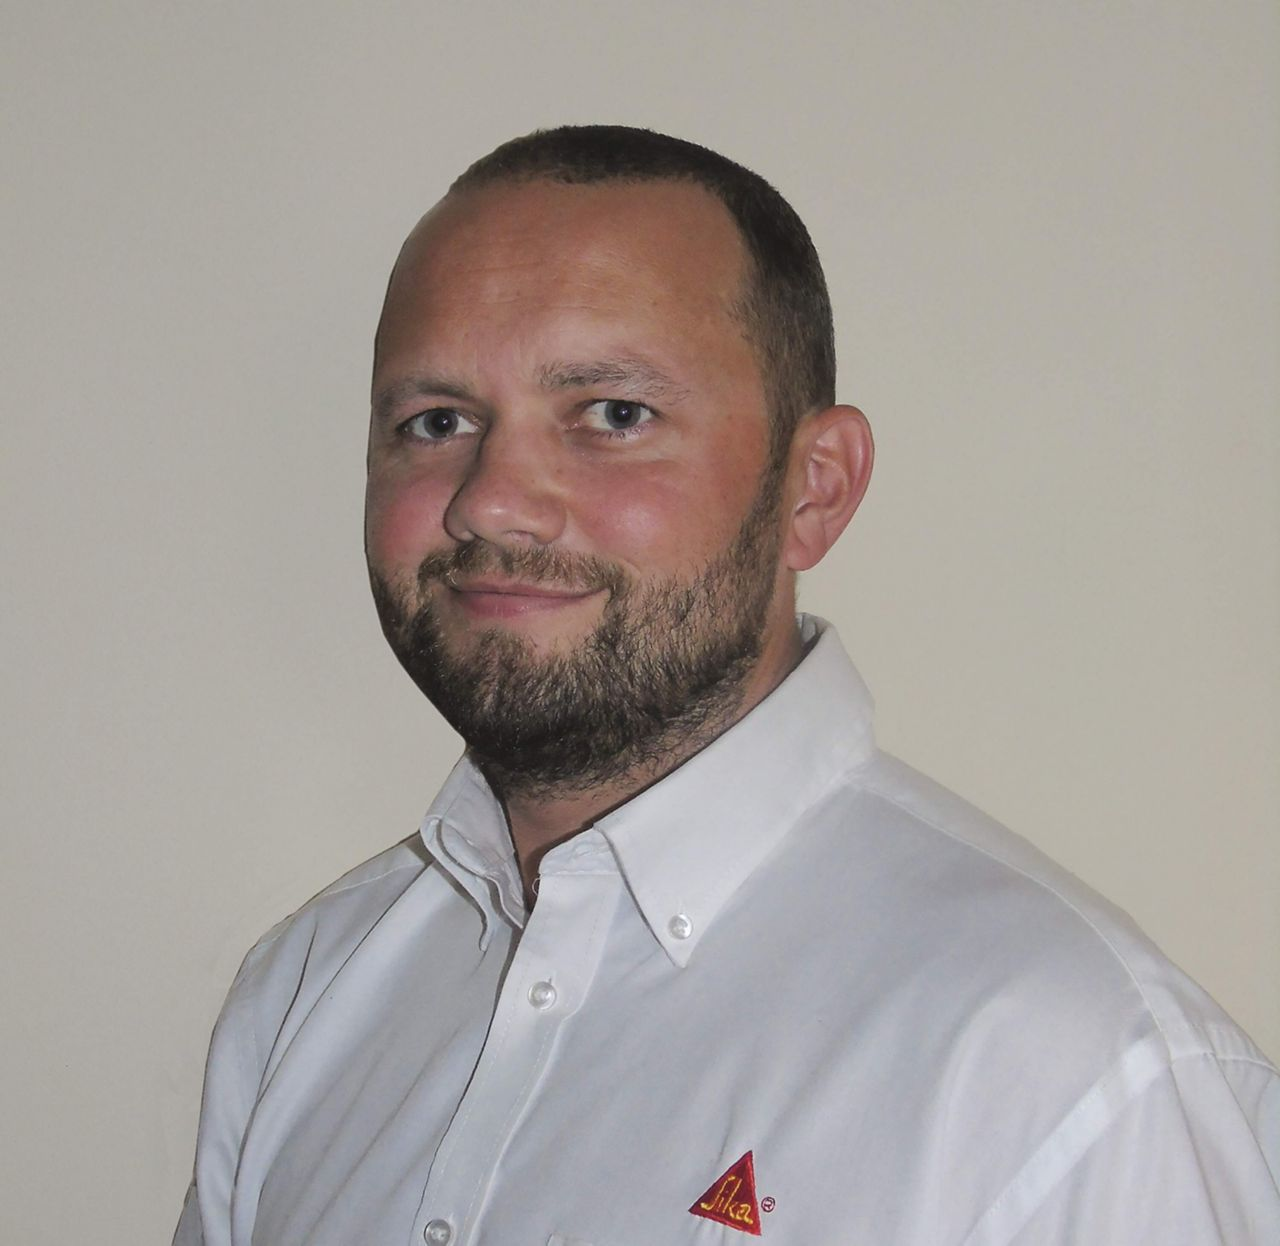 Martin Bidewell - Head of Technical & Product Management for Sika Roofing